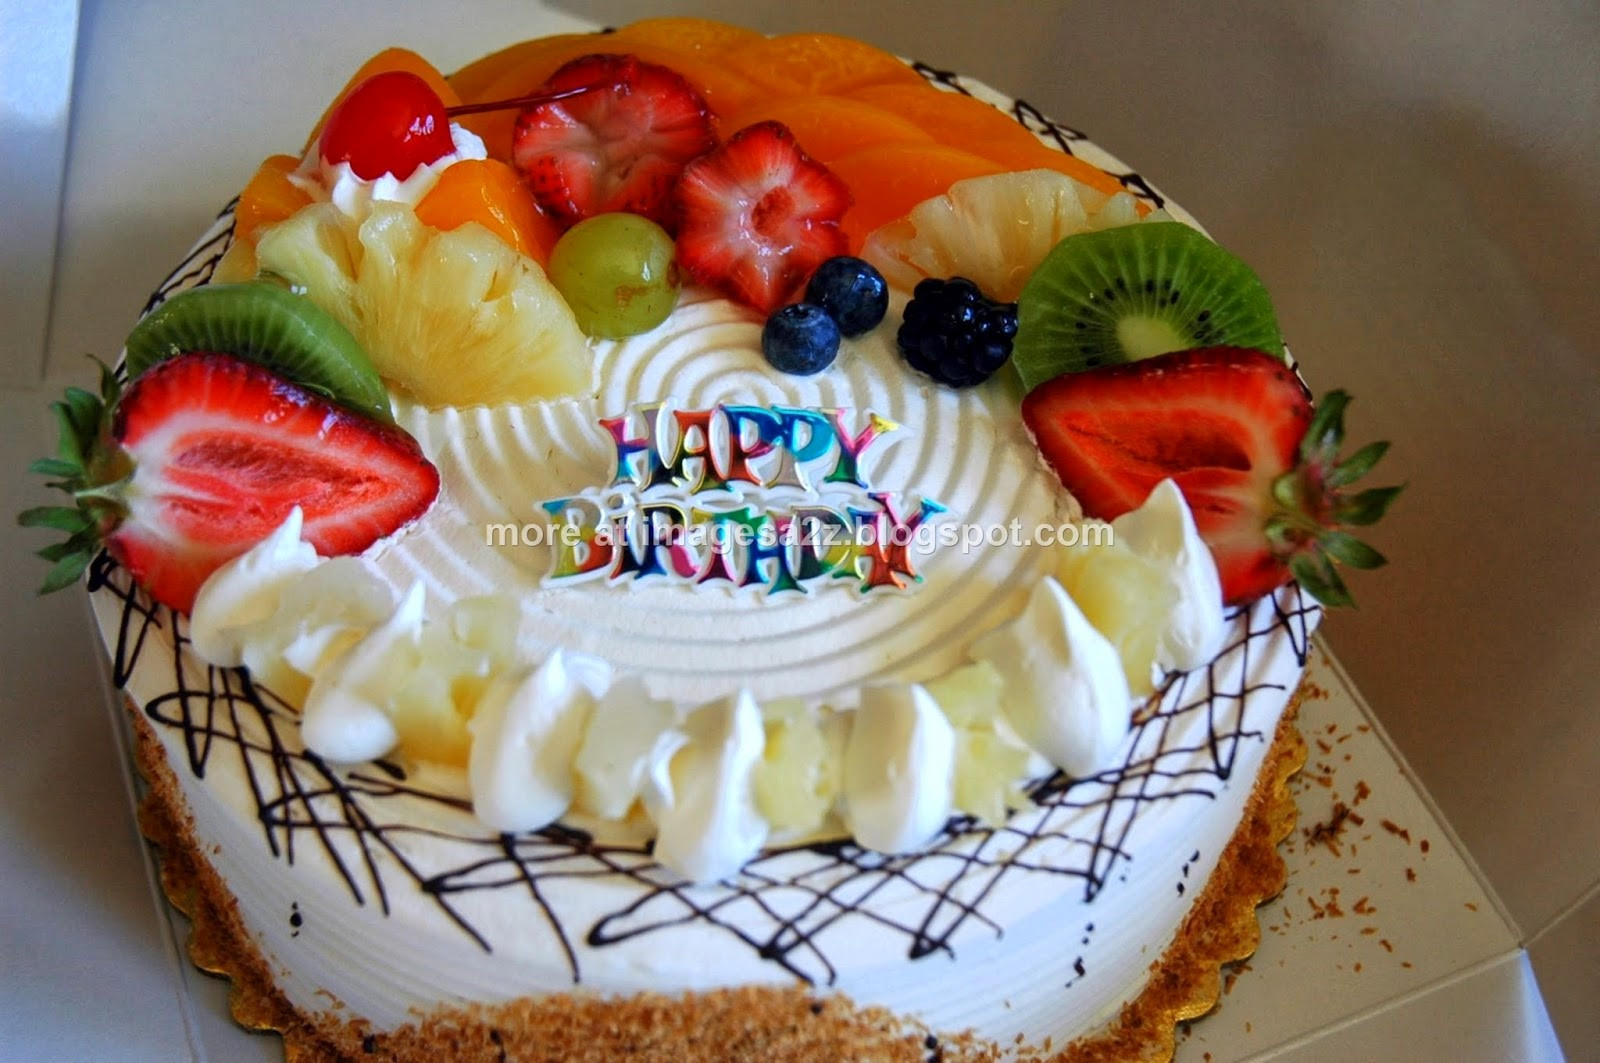 Best ideas about Birthday Wishes Cake . Save or Pin birthday wishes for sister with cake images happy Now.